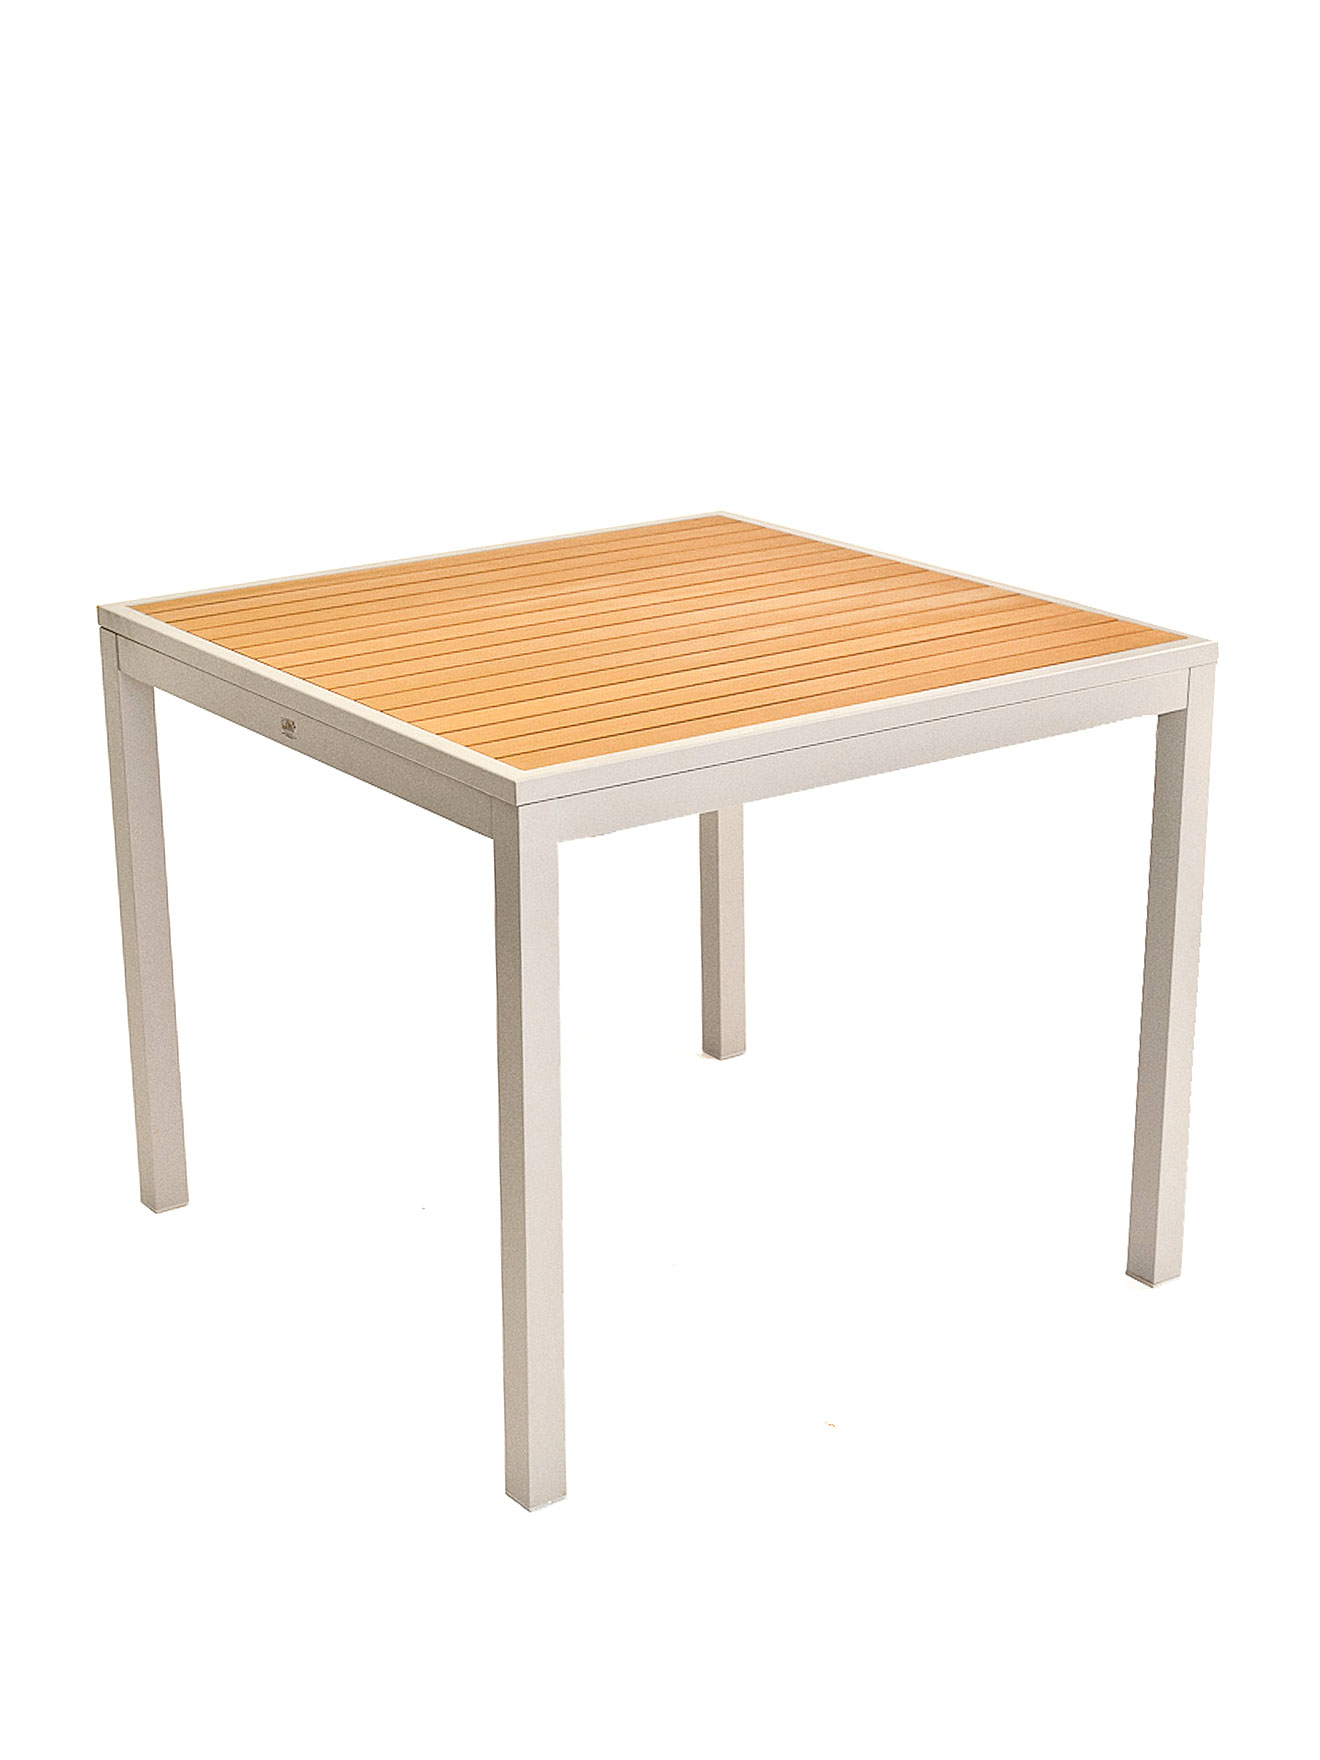 Faux Teak Inlay Aluminum Table Stiat Commercial Restaurant